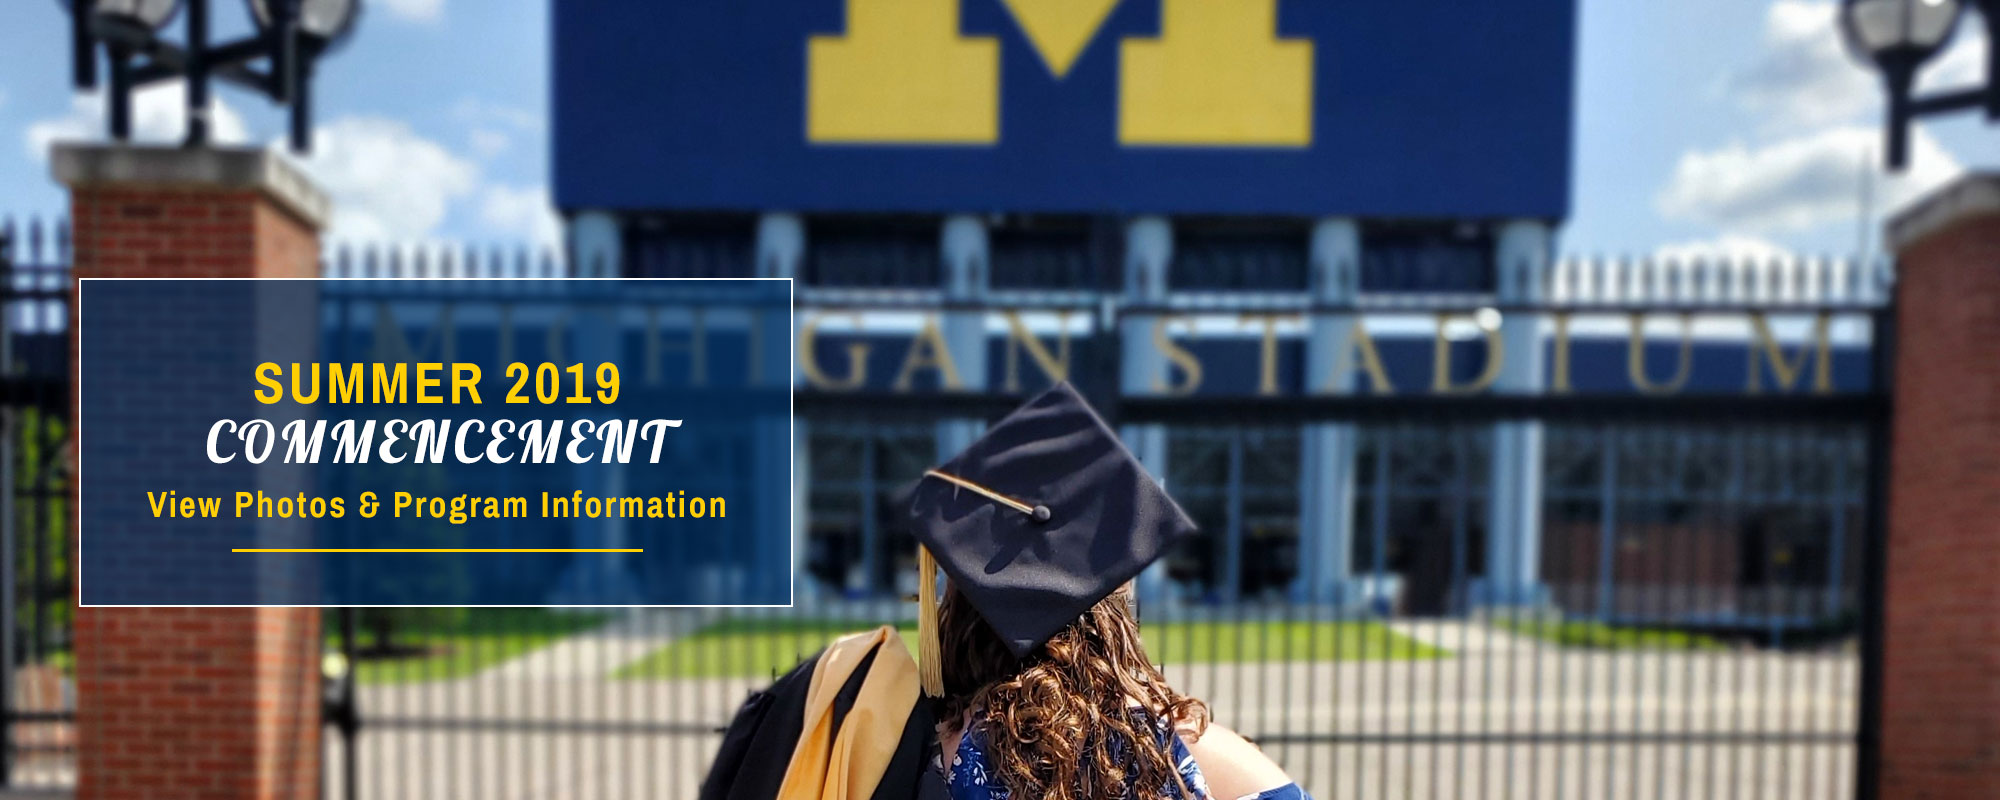 Umich Fall 2019 Academic Calendar School of Social Work | University of Michigan